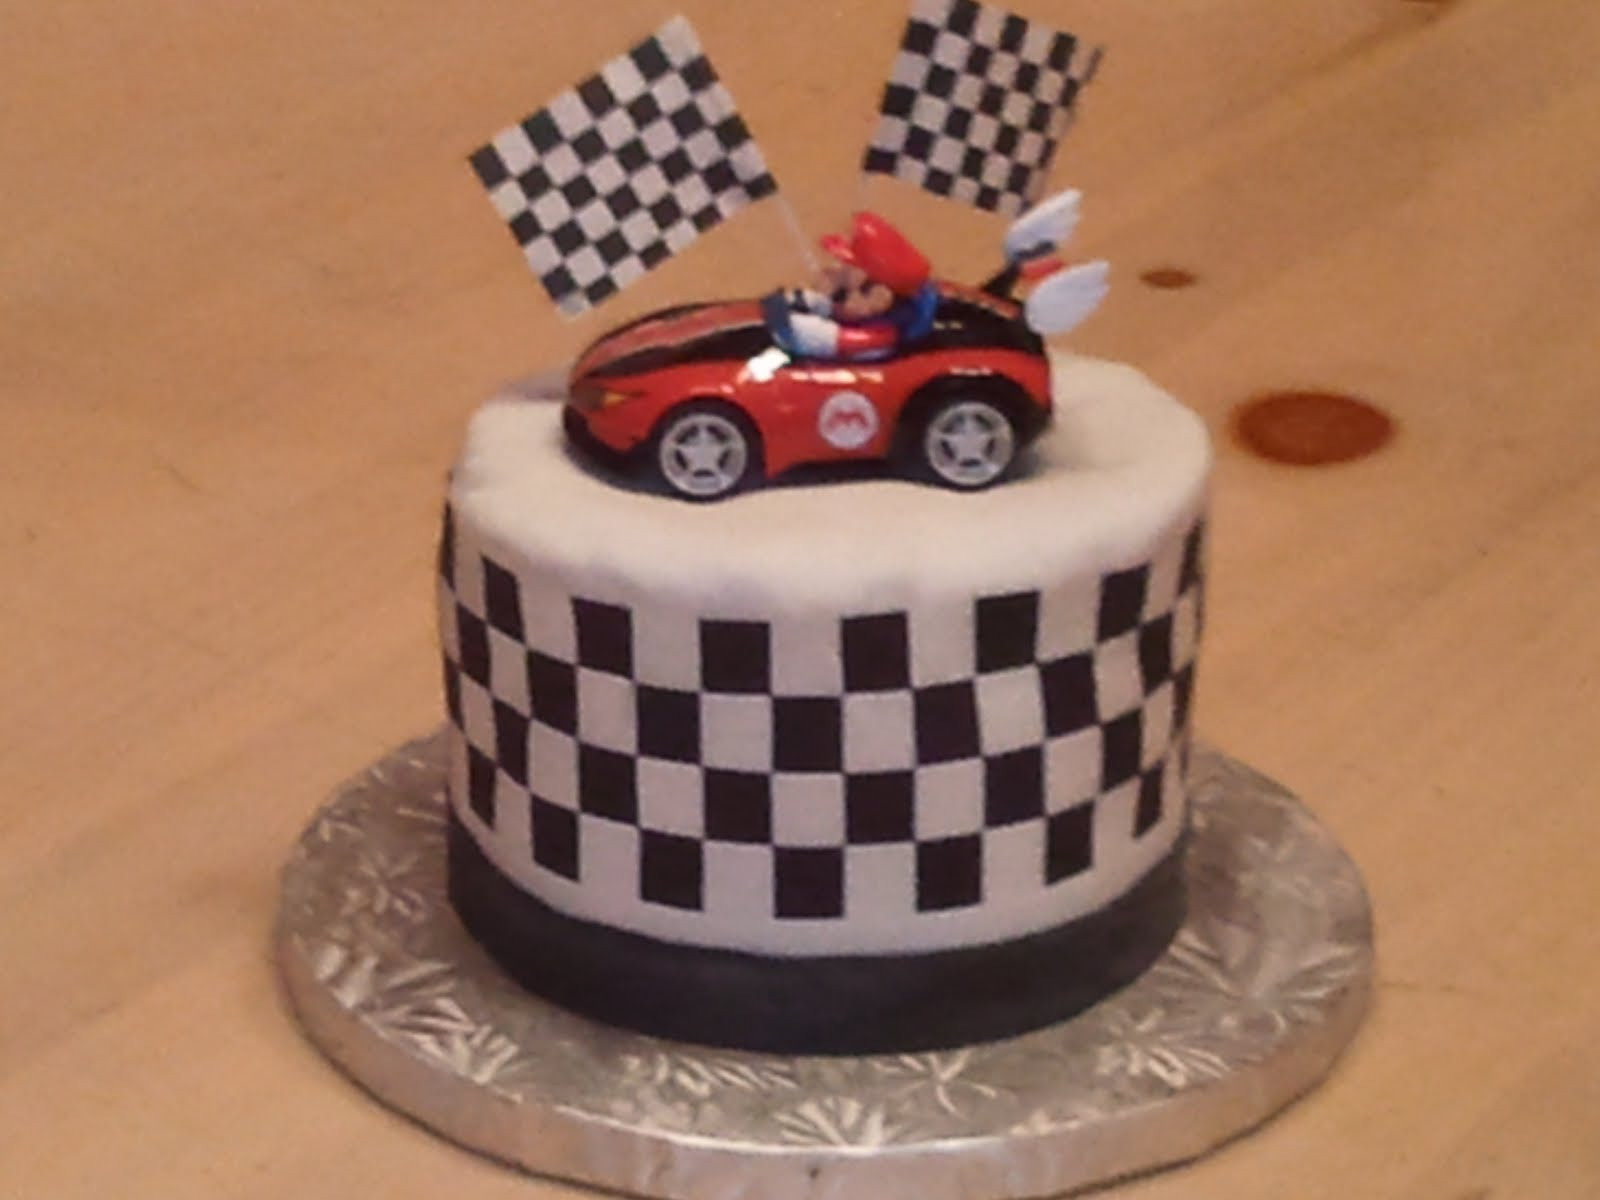 Wii Mario Kart cake, Decorate-Your-Own cake, baby shower cookies and